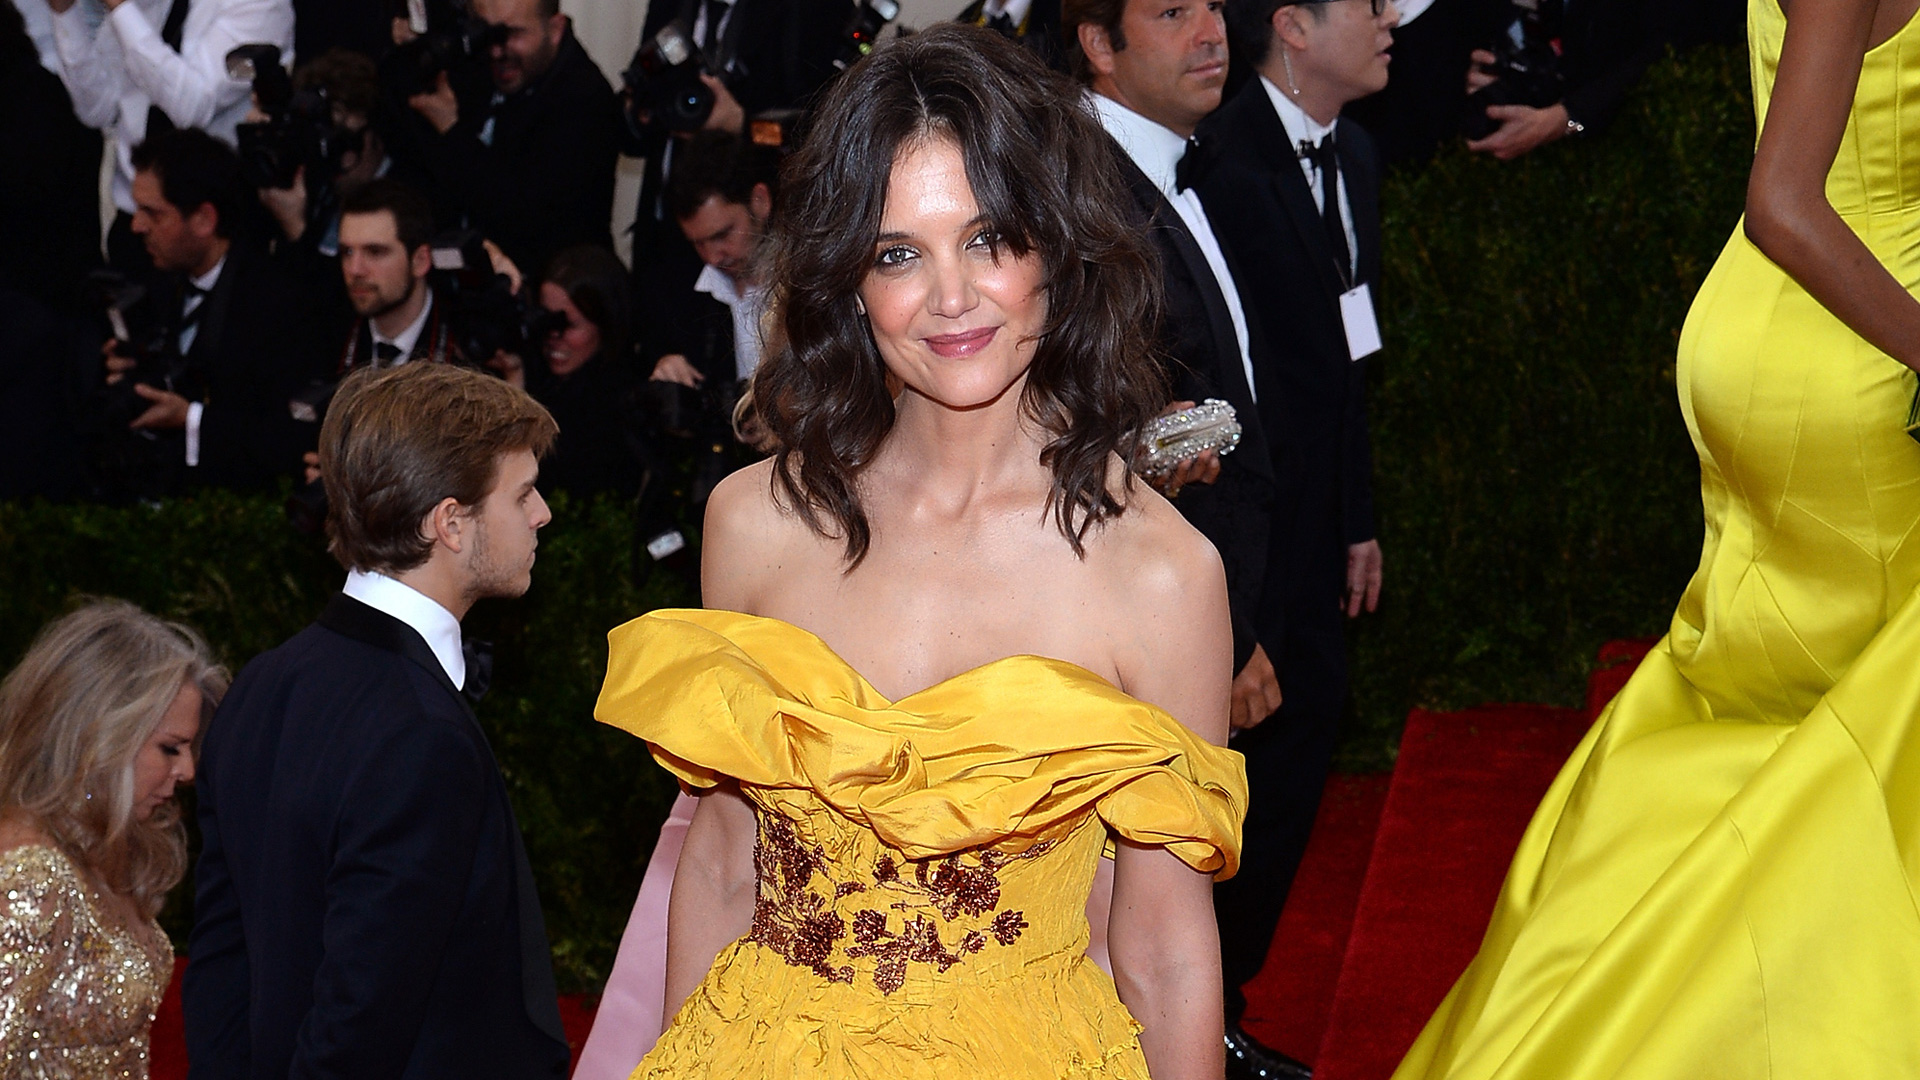 Katie Holmes as Belle in Beauty and the Beast at the 2014 Met Gala